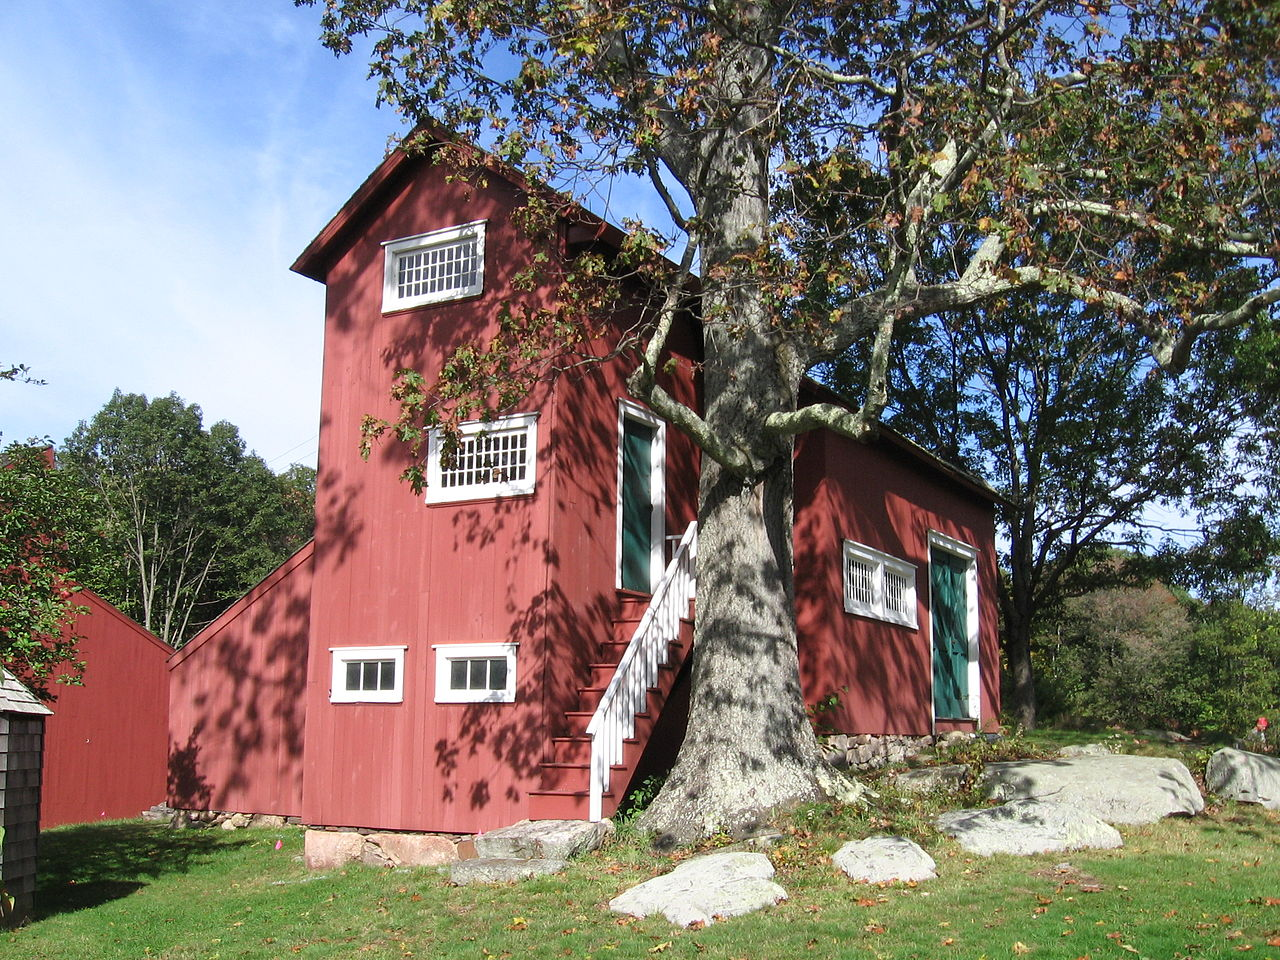 A side shot of Julian Alden Weir's Studio. The three-story building is painted red and has green doors. The windows and outside stair-railings are painted white. Much of the building is obstructed by a large tree. There are stepping stones running through the front yard.